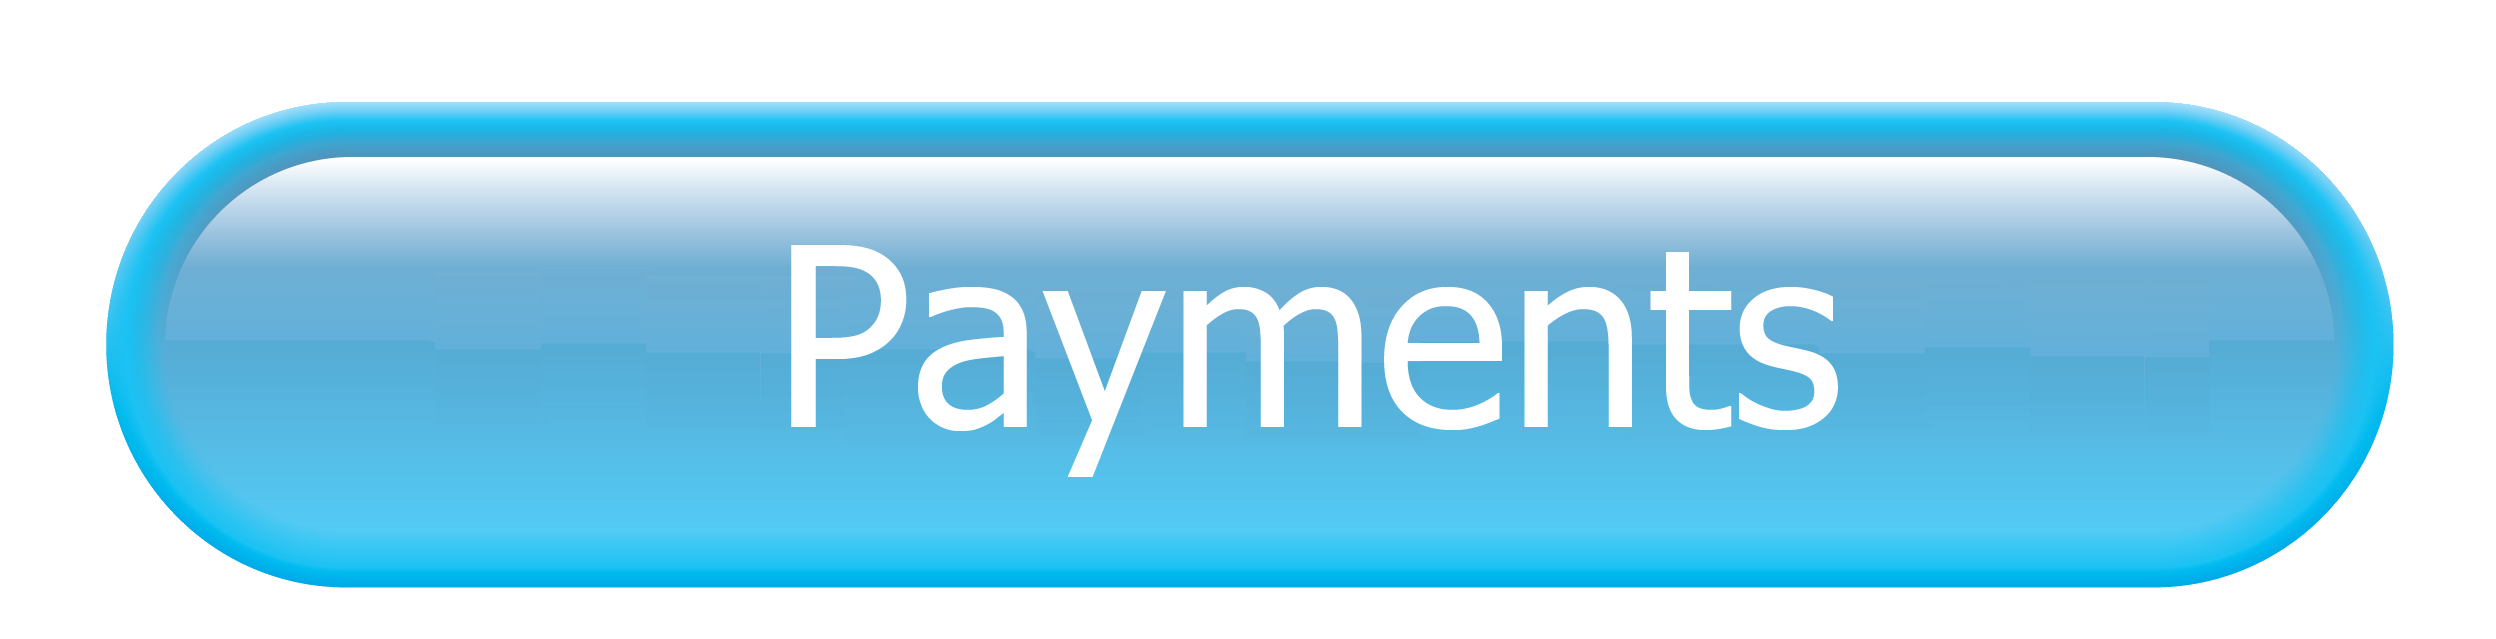 Go to Payment Button